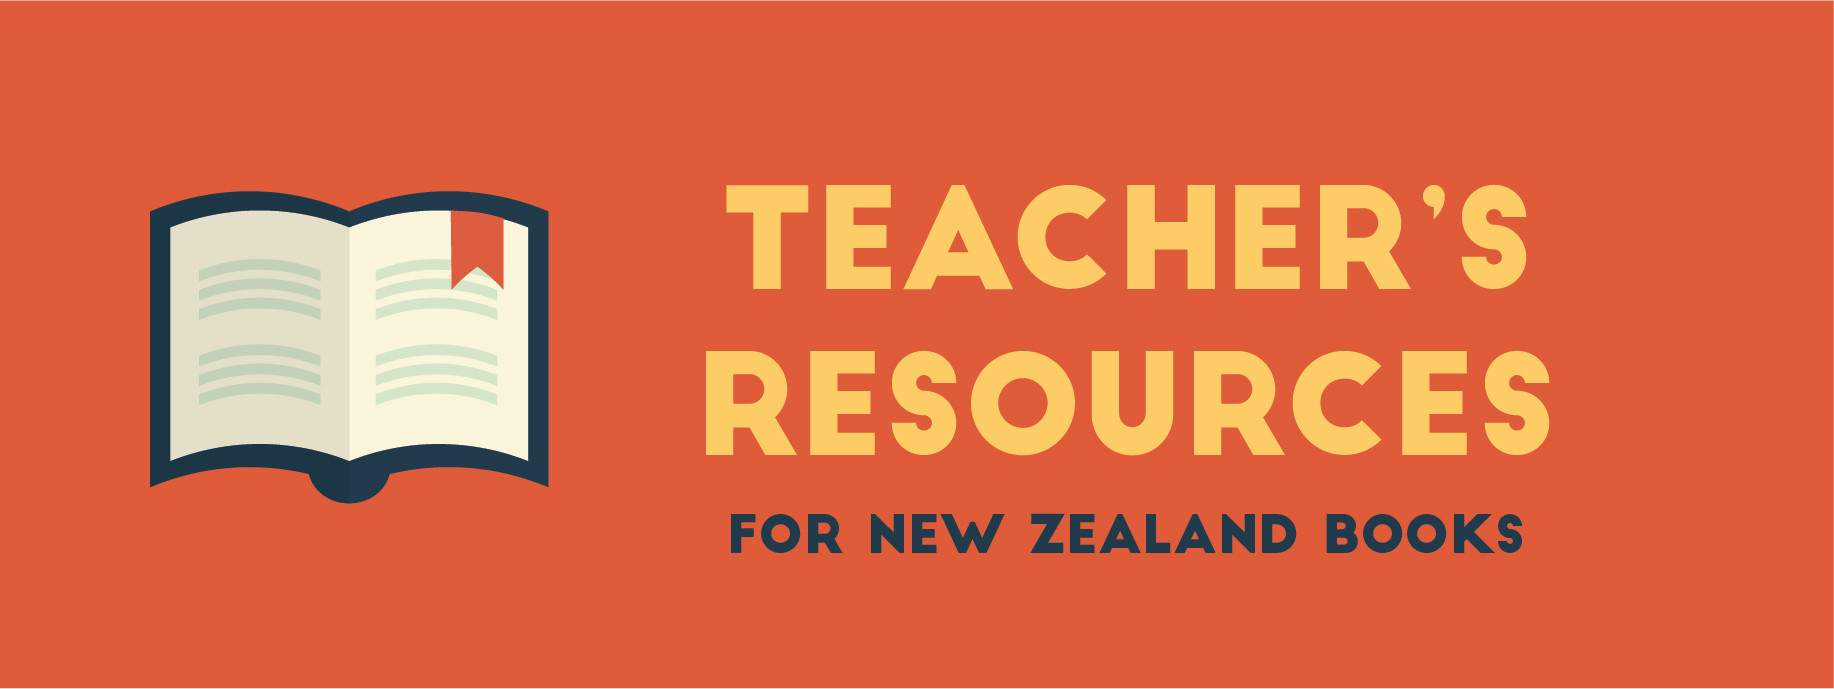 HNZ Banner_Teachers Resources-04